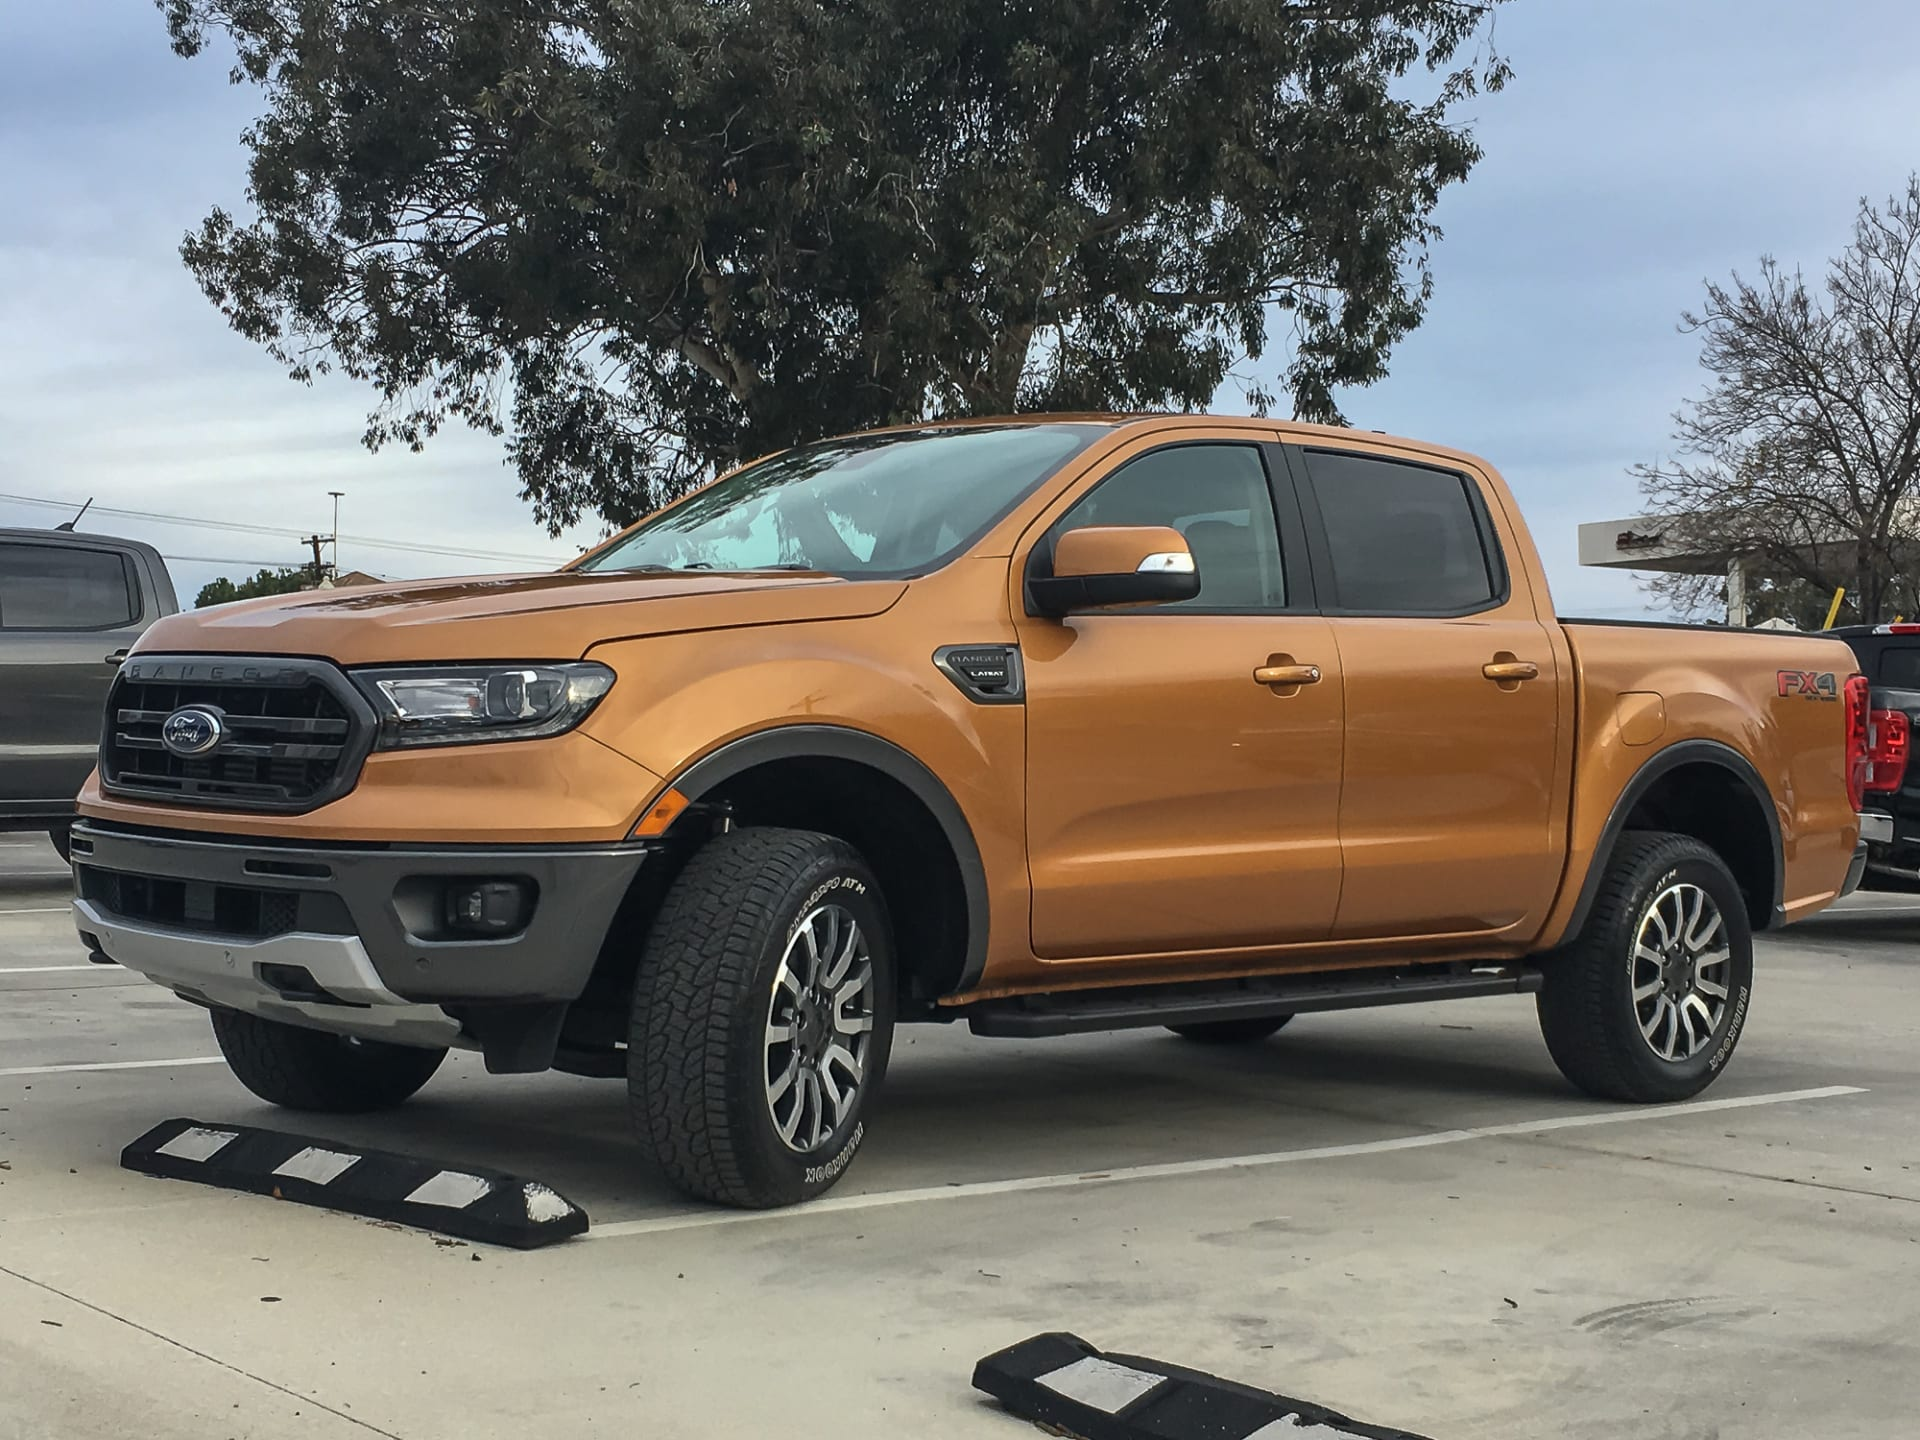 2019 Ford Ranger: 7 Things We Like (and 1 Not So Much